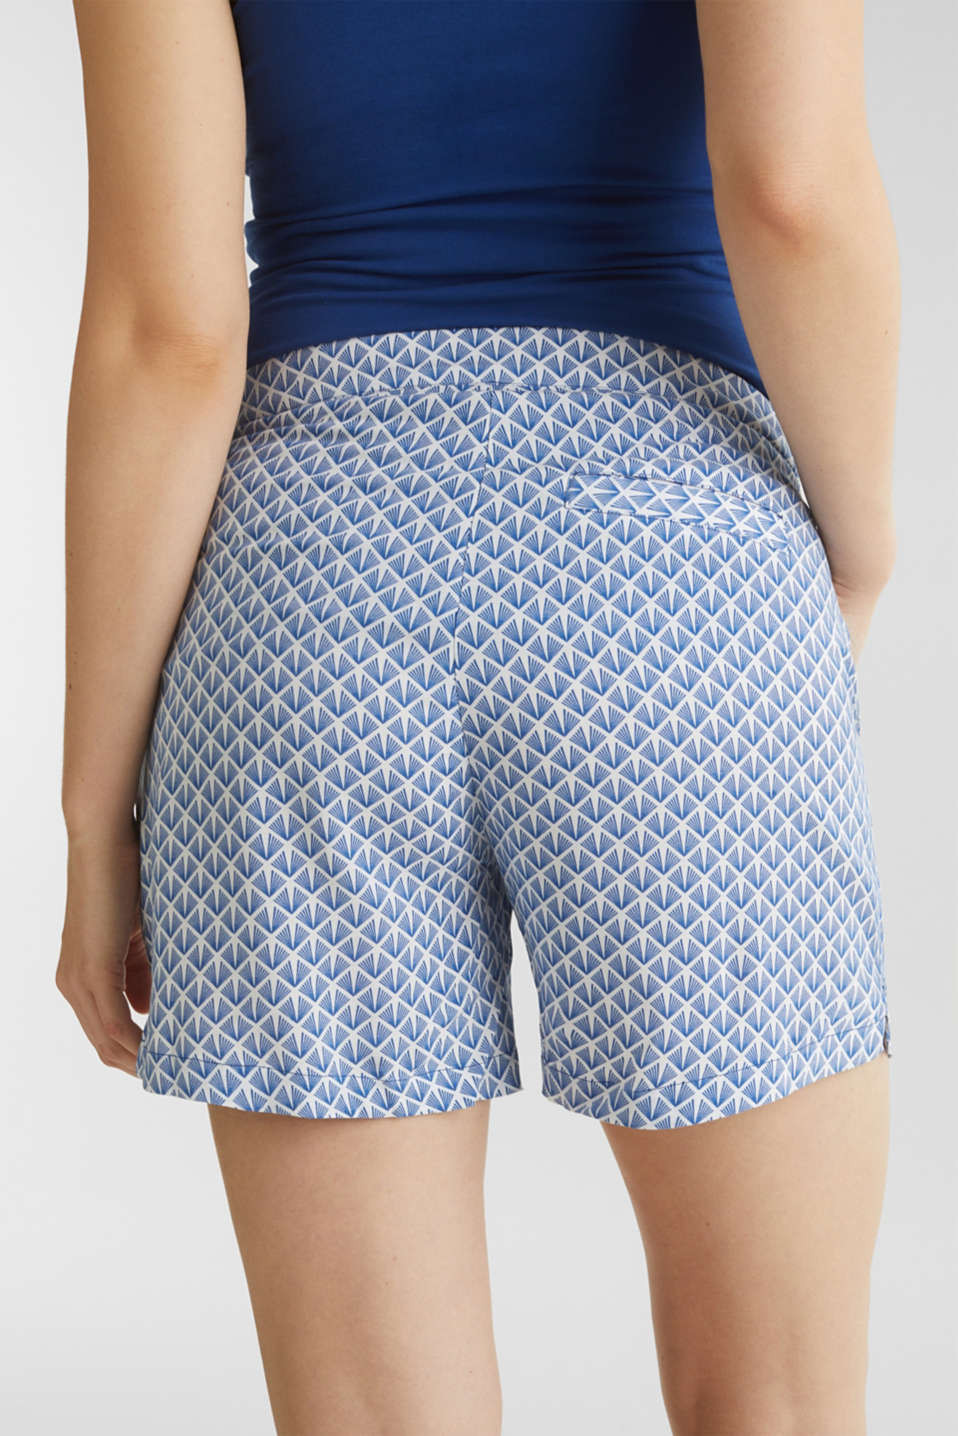 Woven shorts with an under-bump waistband, LCGREY BLUE, detail image number 5